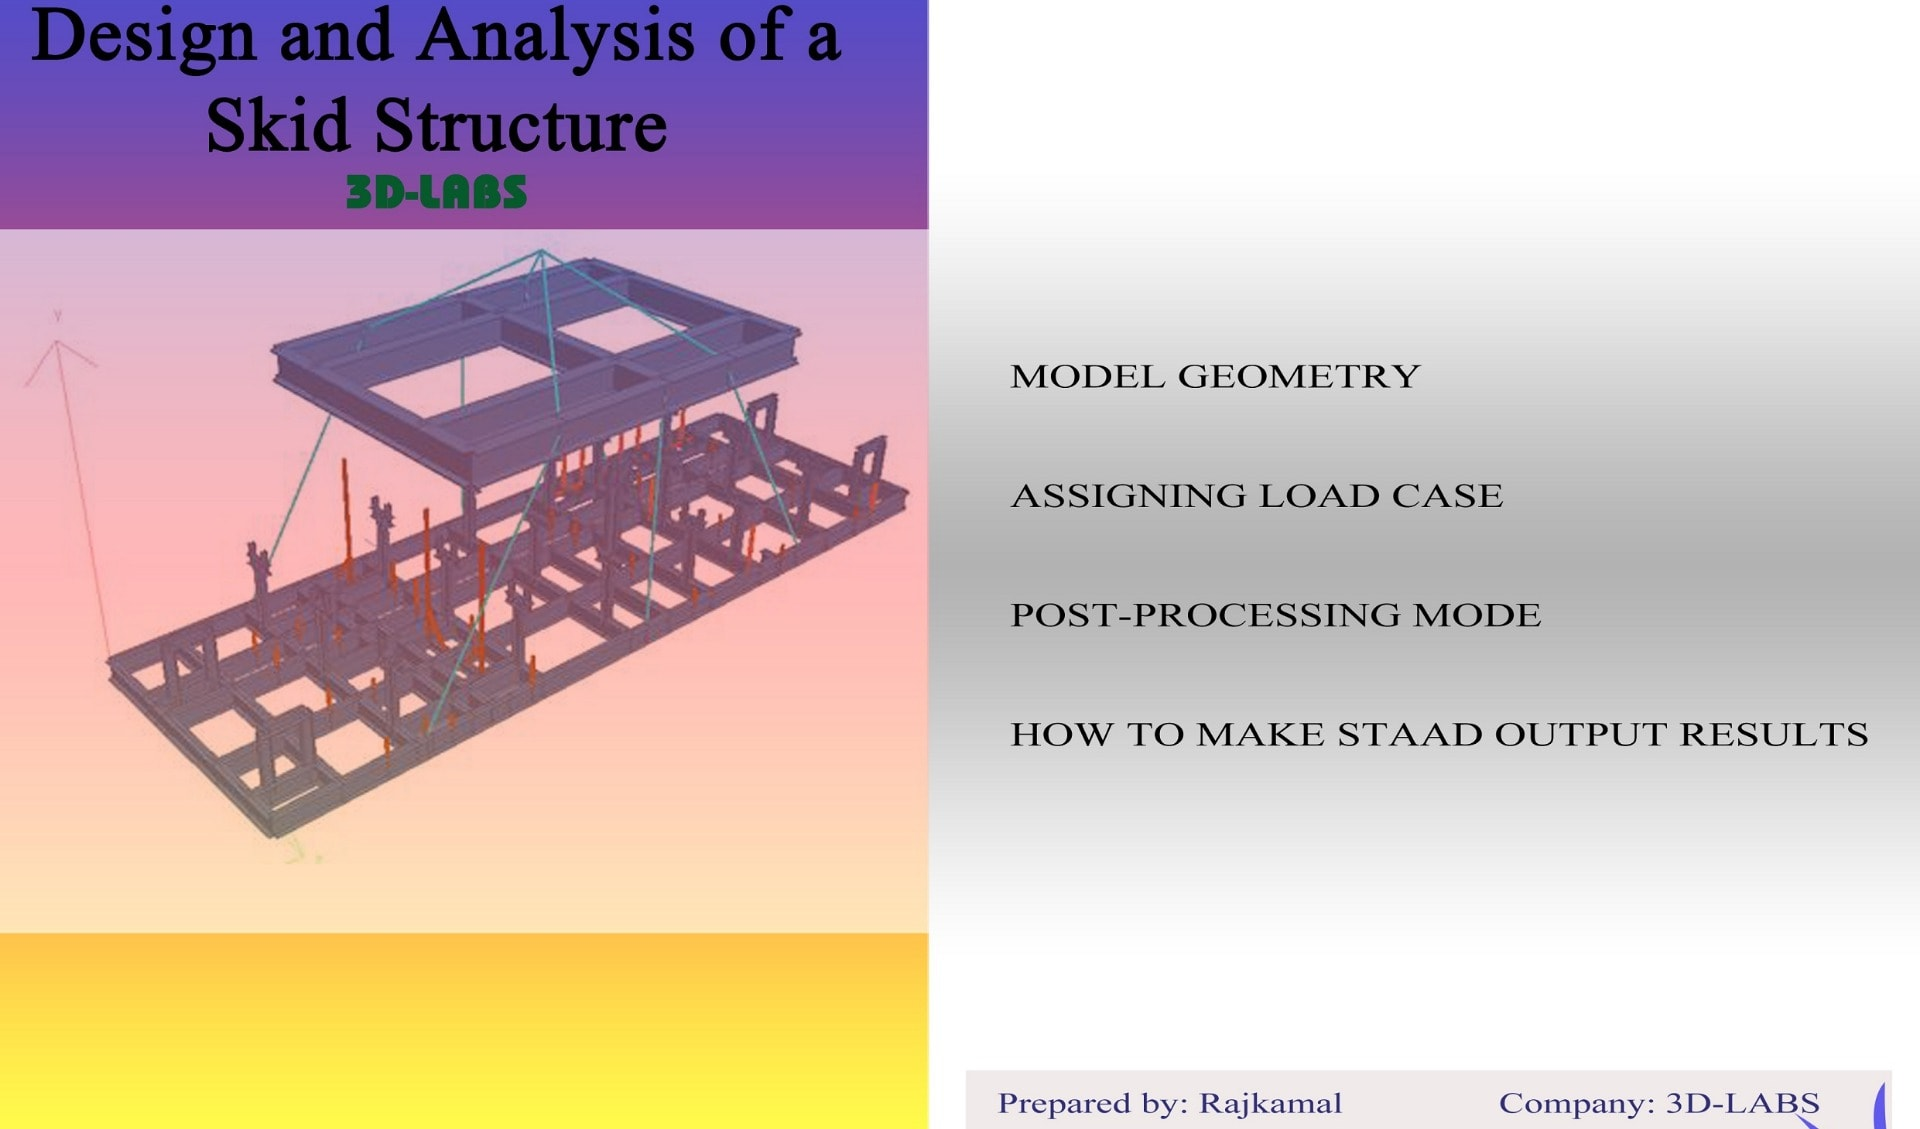 Design and Analysis skid structure